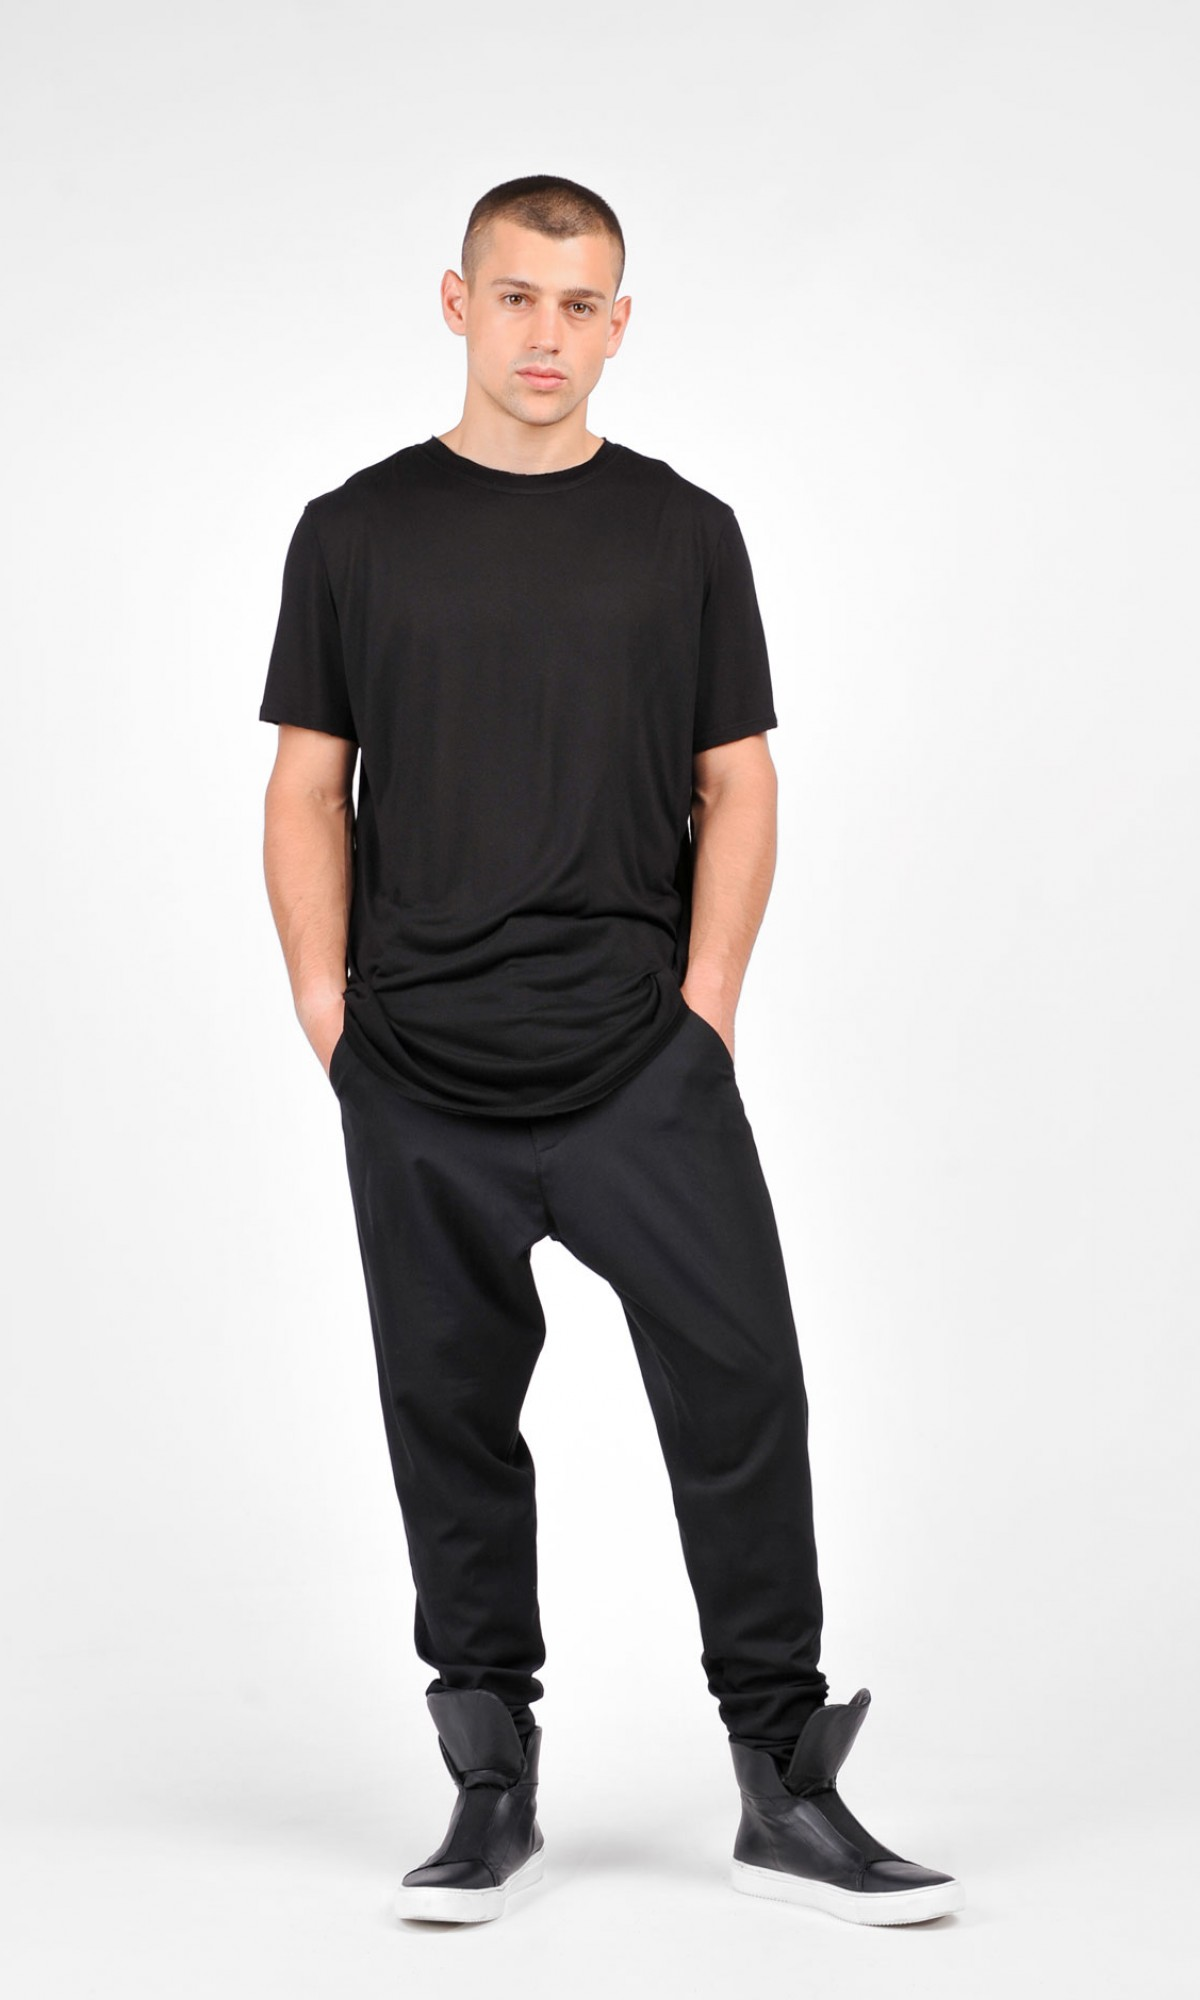 Cold Wool Black Loose Drop Crotch Pants A05581M